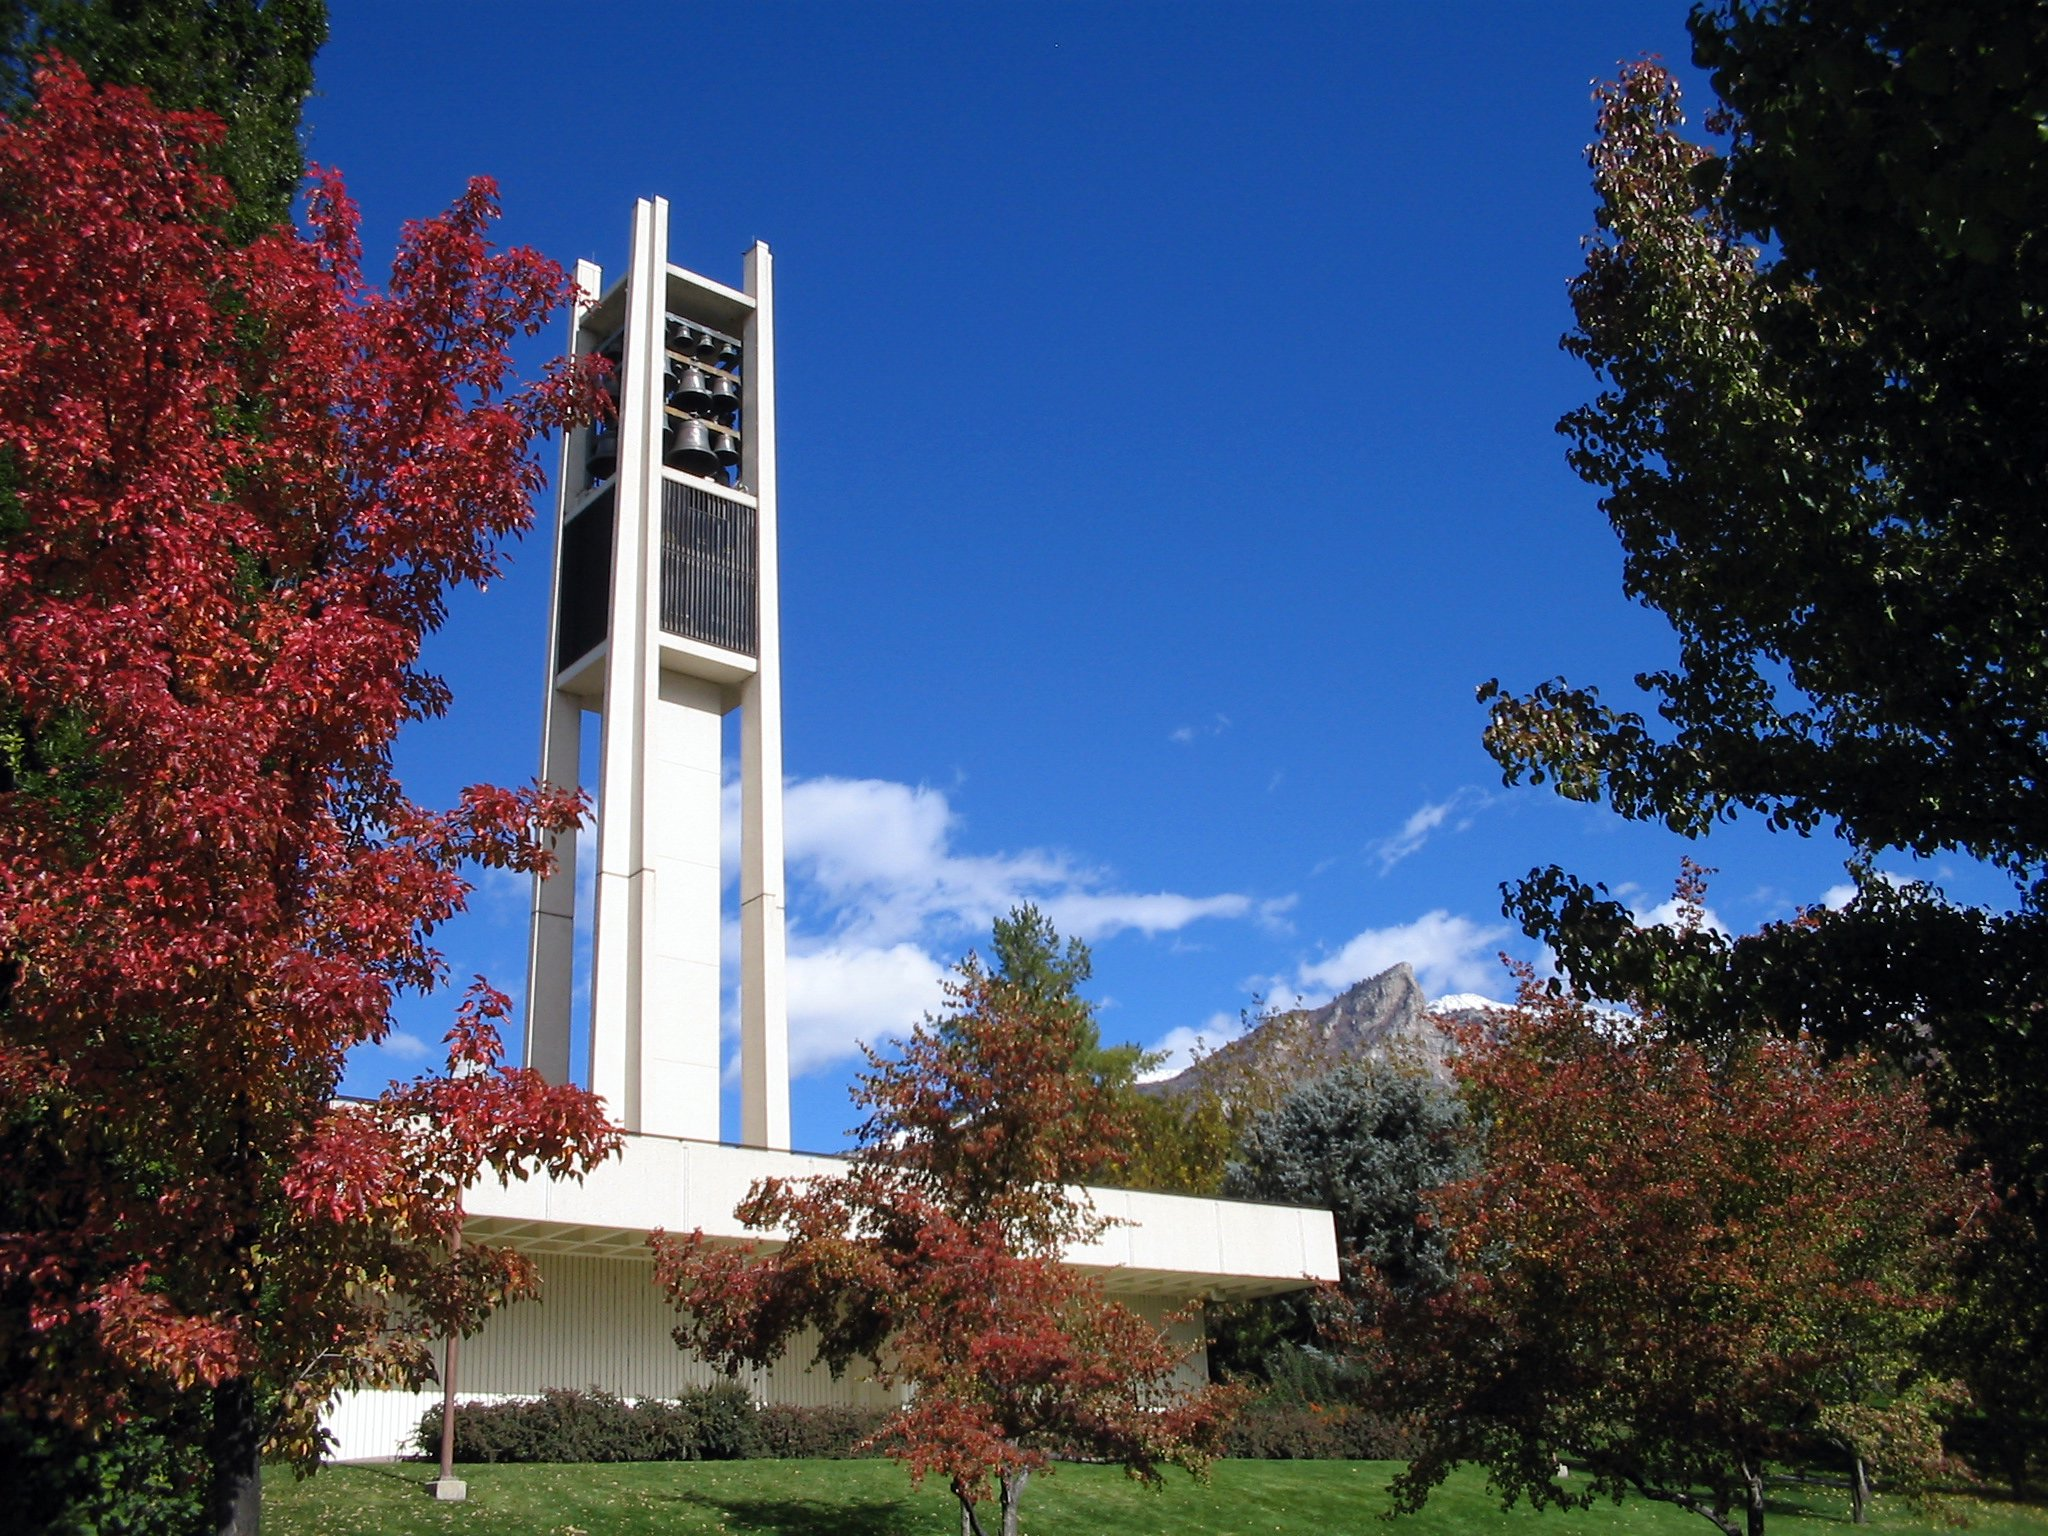 The Clarillon bell tower on BYU's campus